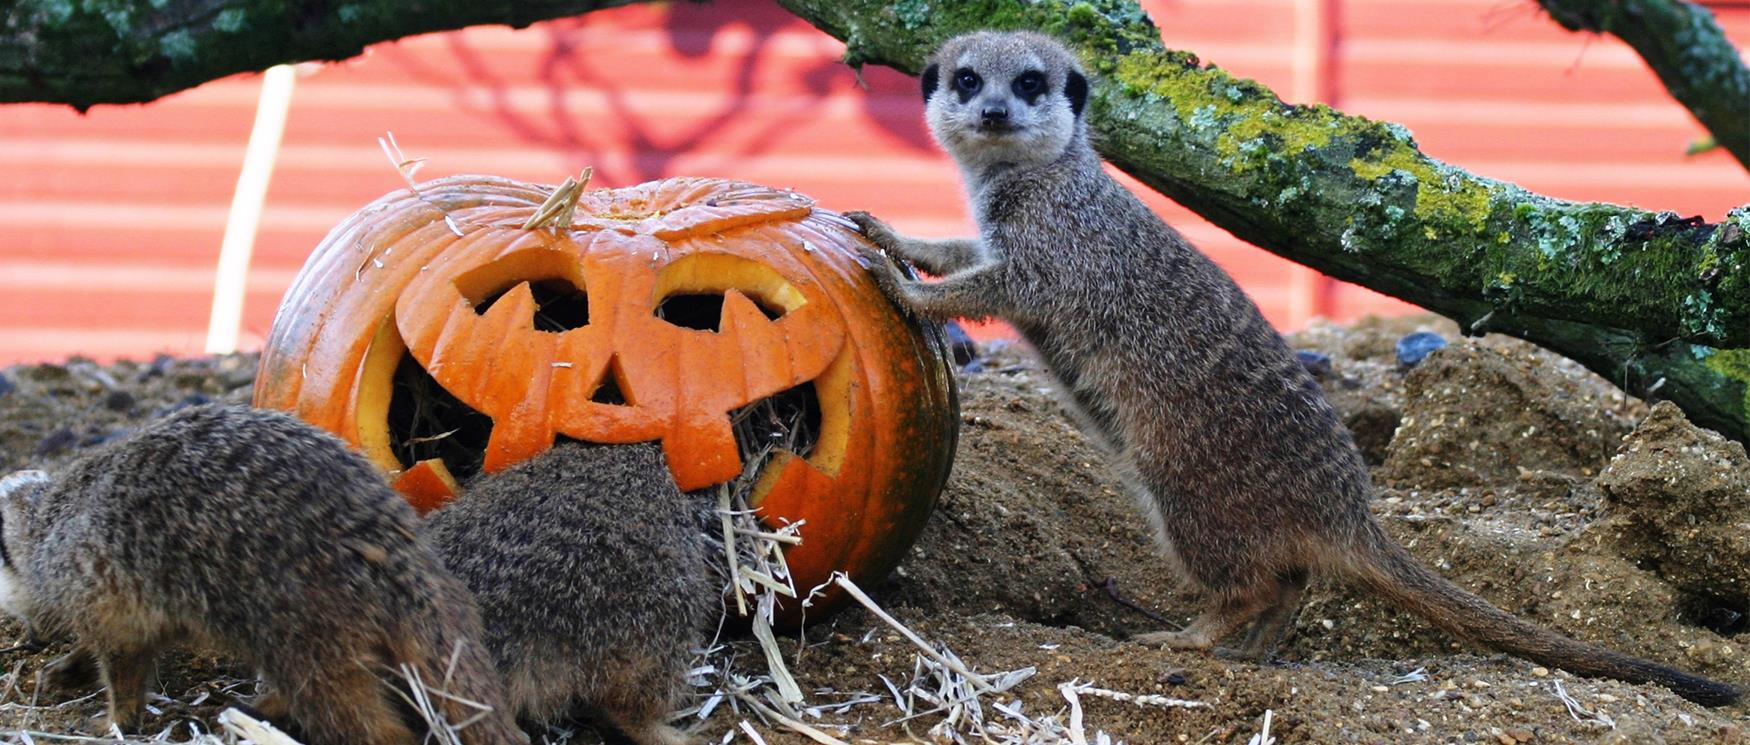 Halloween and October Half Term in Hampshire